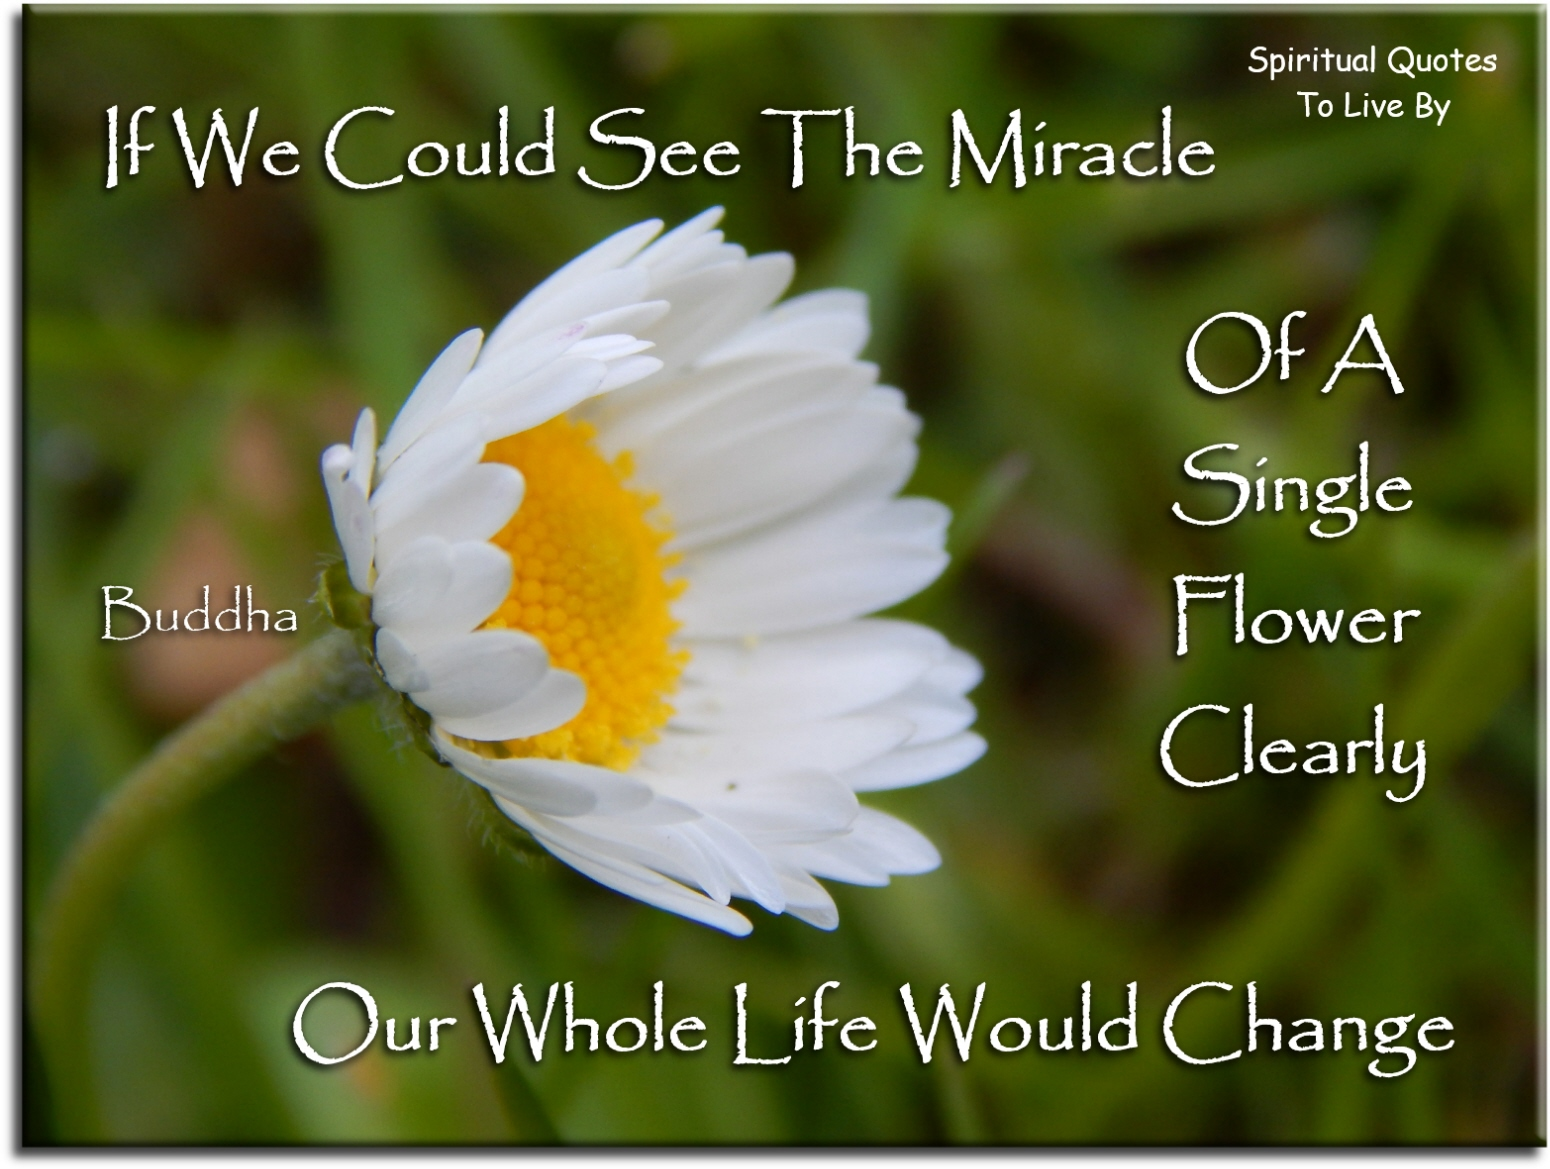 Spiritual Quotes About Life Changes Quotes About Life To Live By